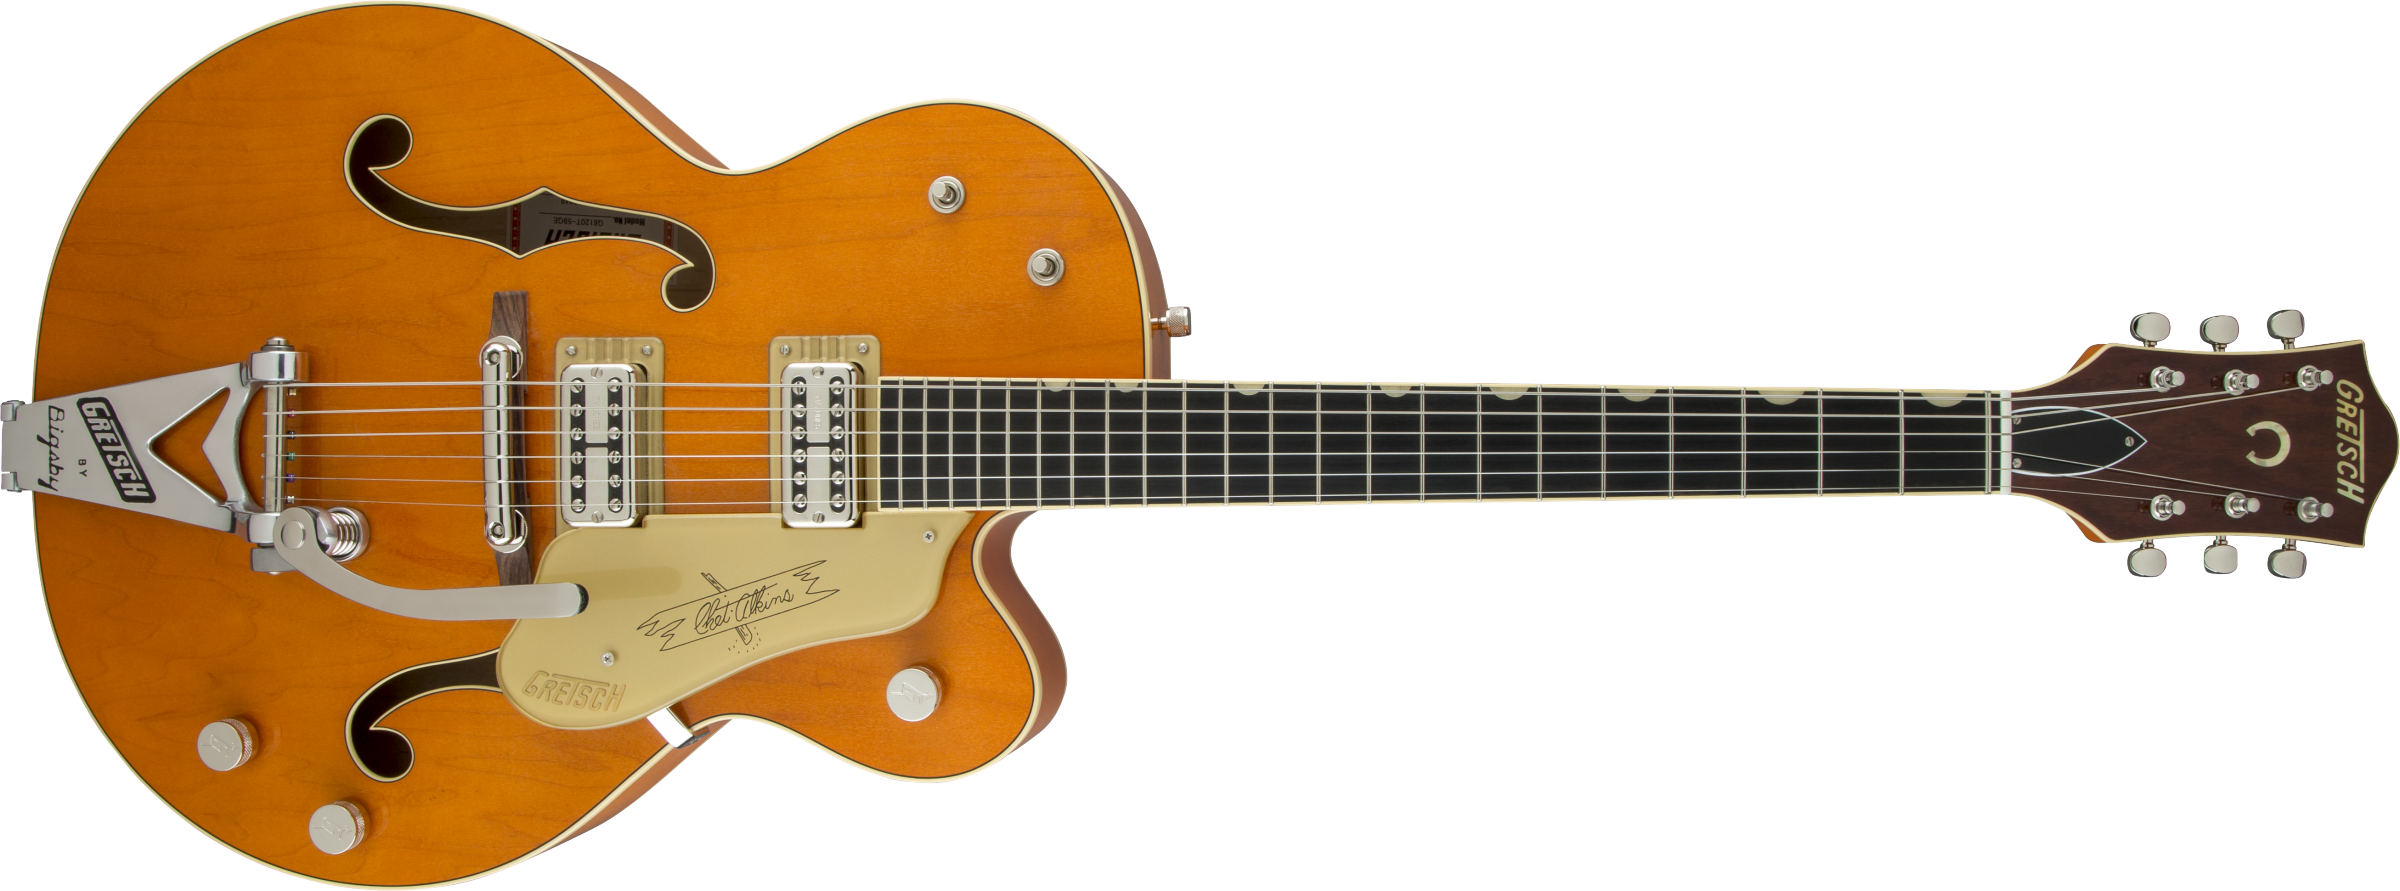 G6120T-59 Vintage Select Edition '59 Chet Atkins® Hollow Body with Bigsby®, TV Jones®, Vintage Orange Stain Lacquer